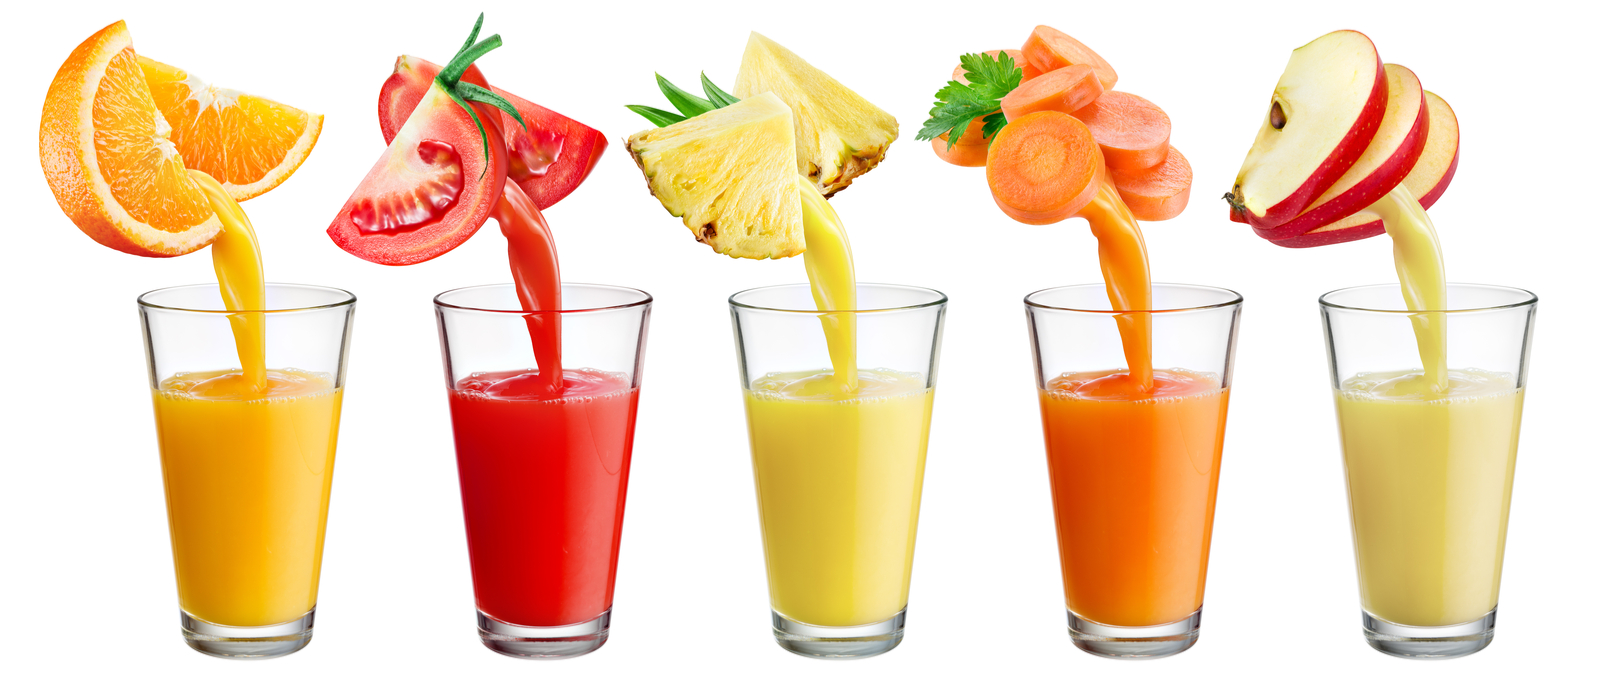 Juicing Recipes | 4 Delicious Juicing Recipes That Are Great For Weight Loss